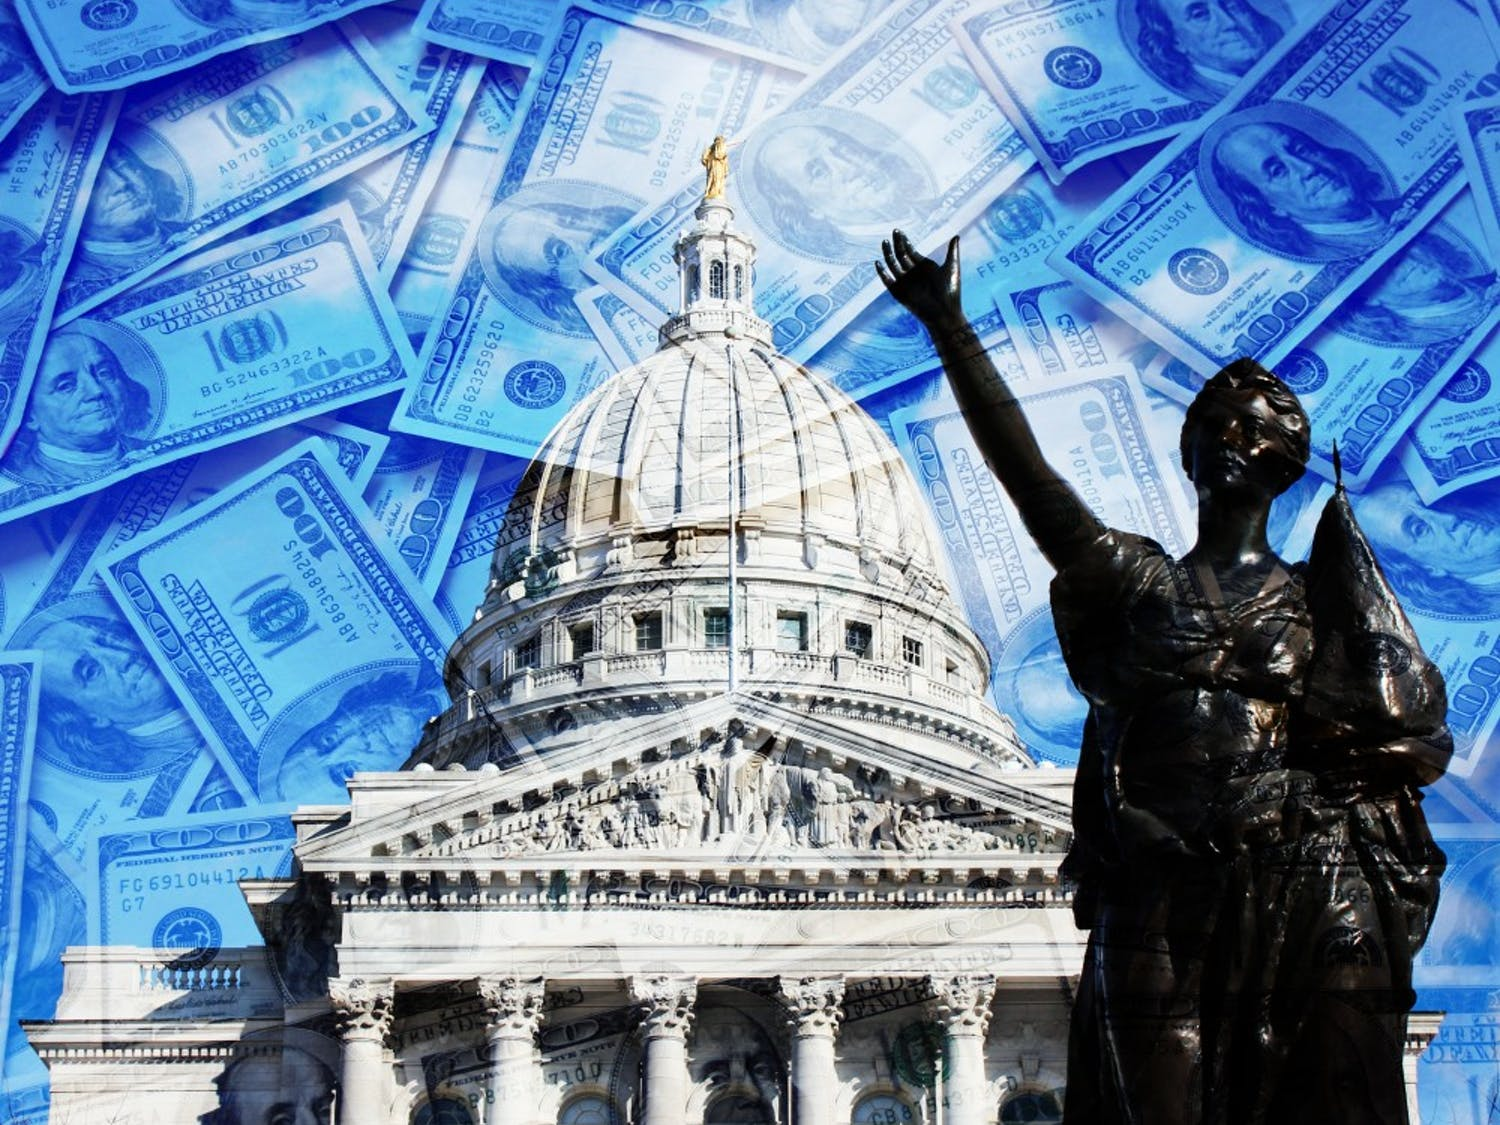 Legislators logged more travel expenses in 2015 than in previous years, despite working fewer days.